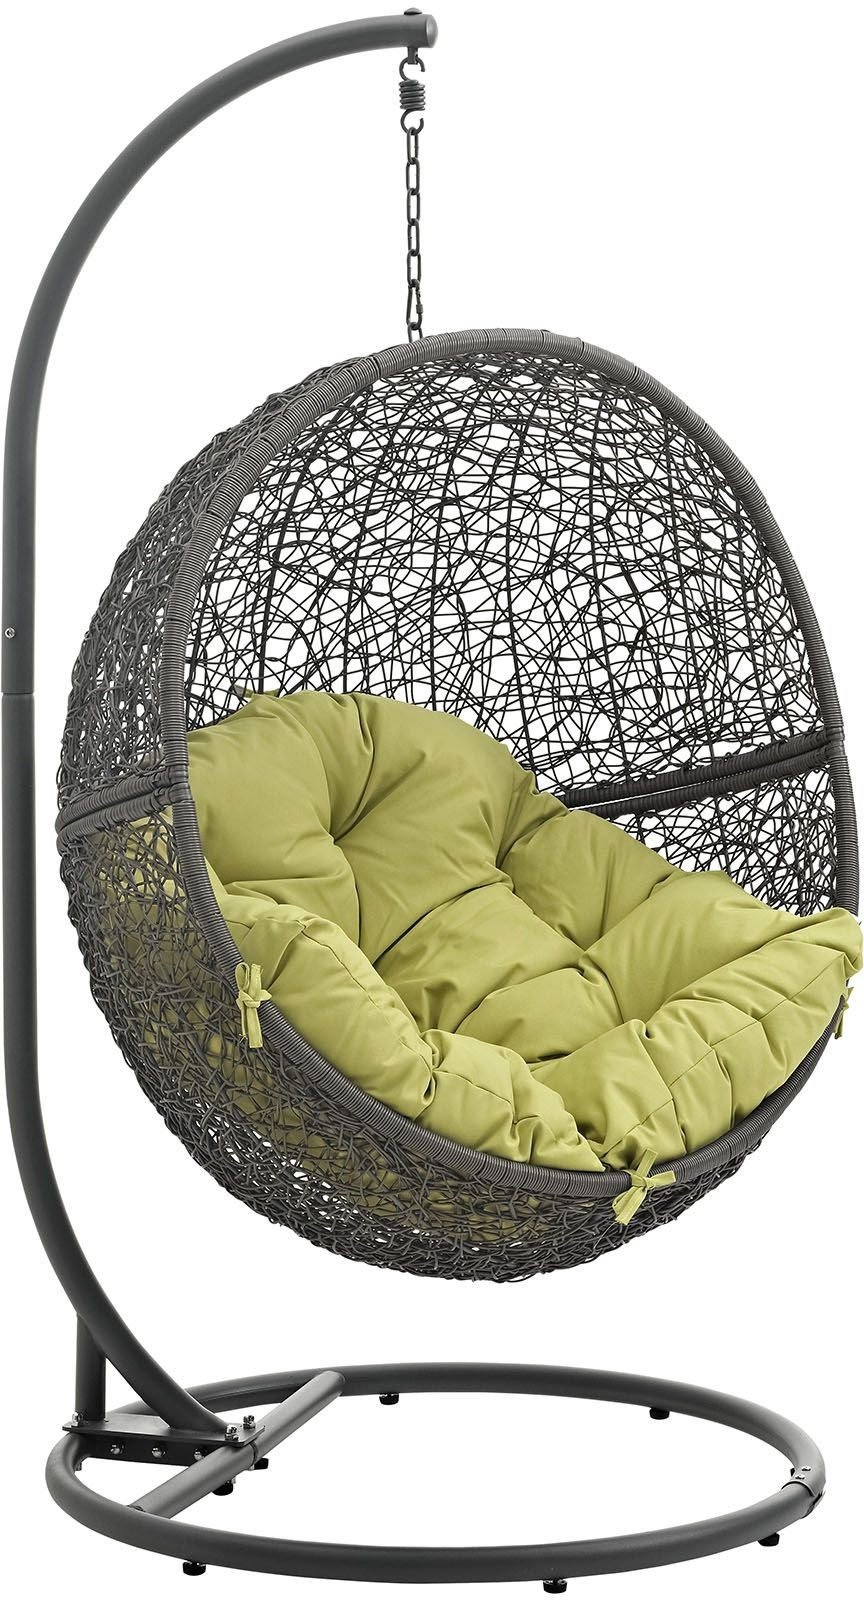 Hide Gray Peridot Outdoor Patio Swing Chair With Stand from Renegade : Coleman Furniture